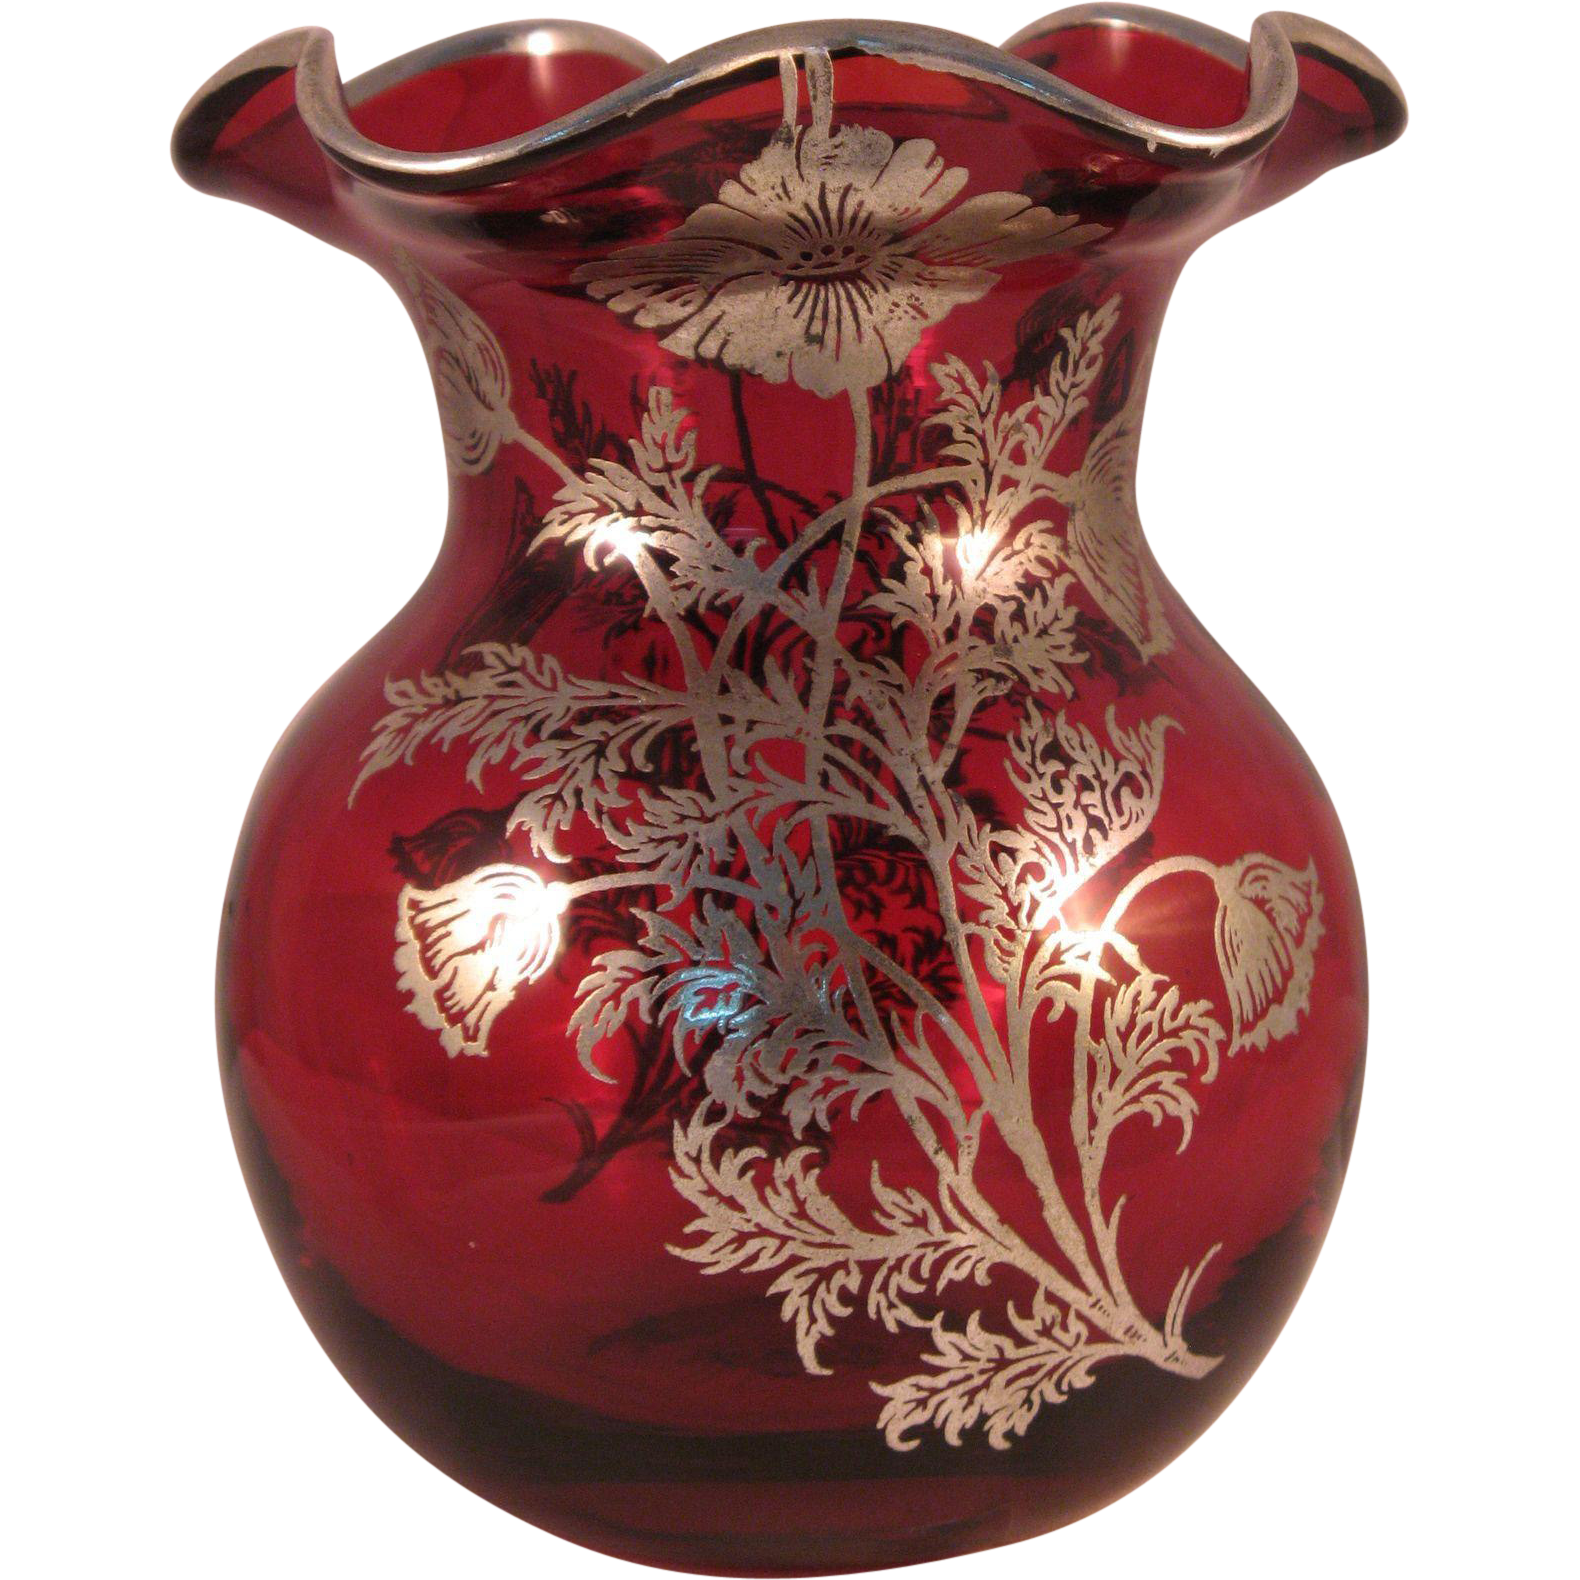 Vintage Ruby Red Ruffle Top Vase with Silver Floral ... Ruffled Art Glass Vase With Silver Handle